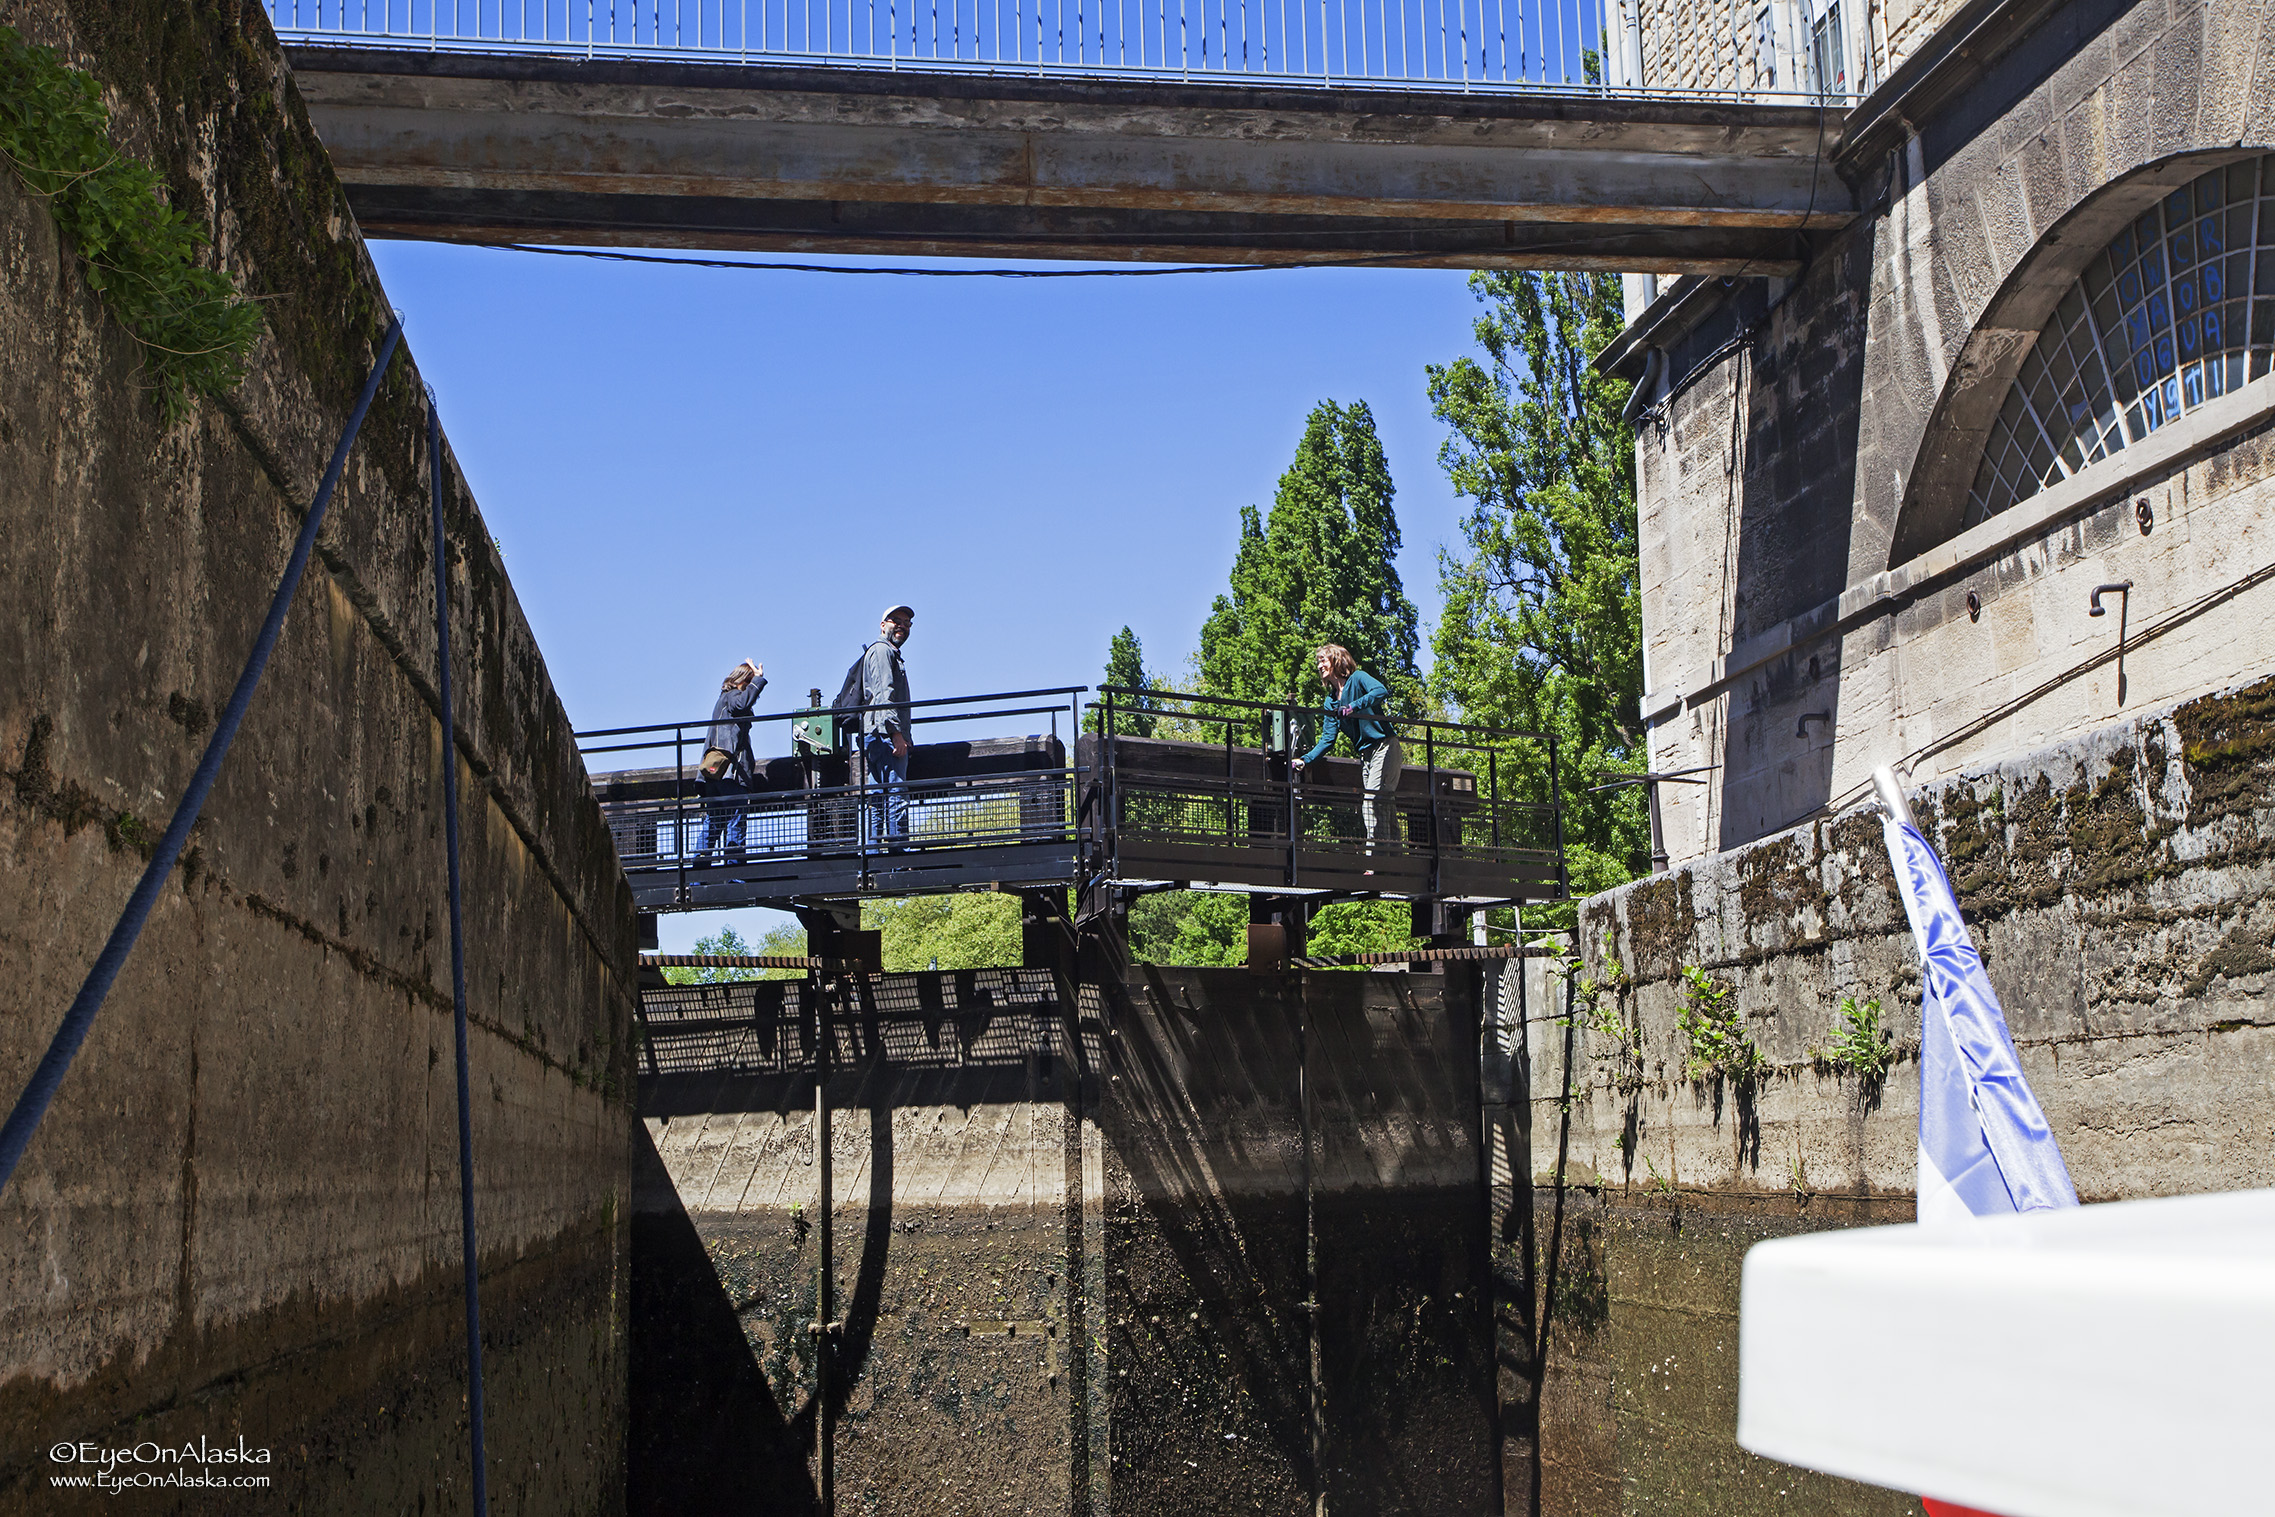 A couple of tourists helped Devany work the cranks to operate the lock. The new automated locks are much easier.